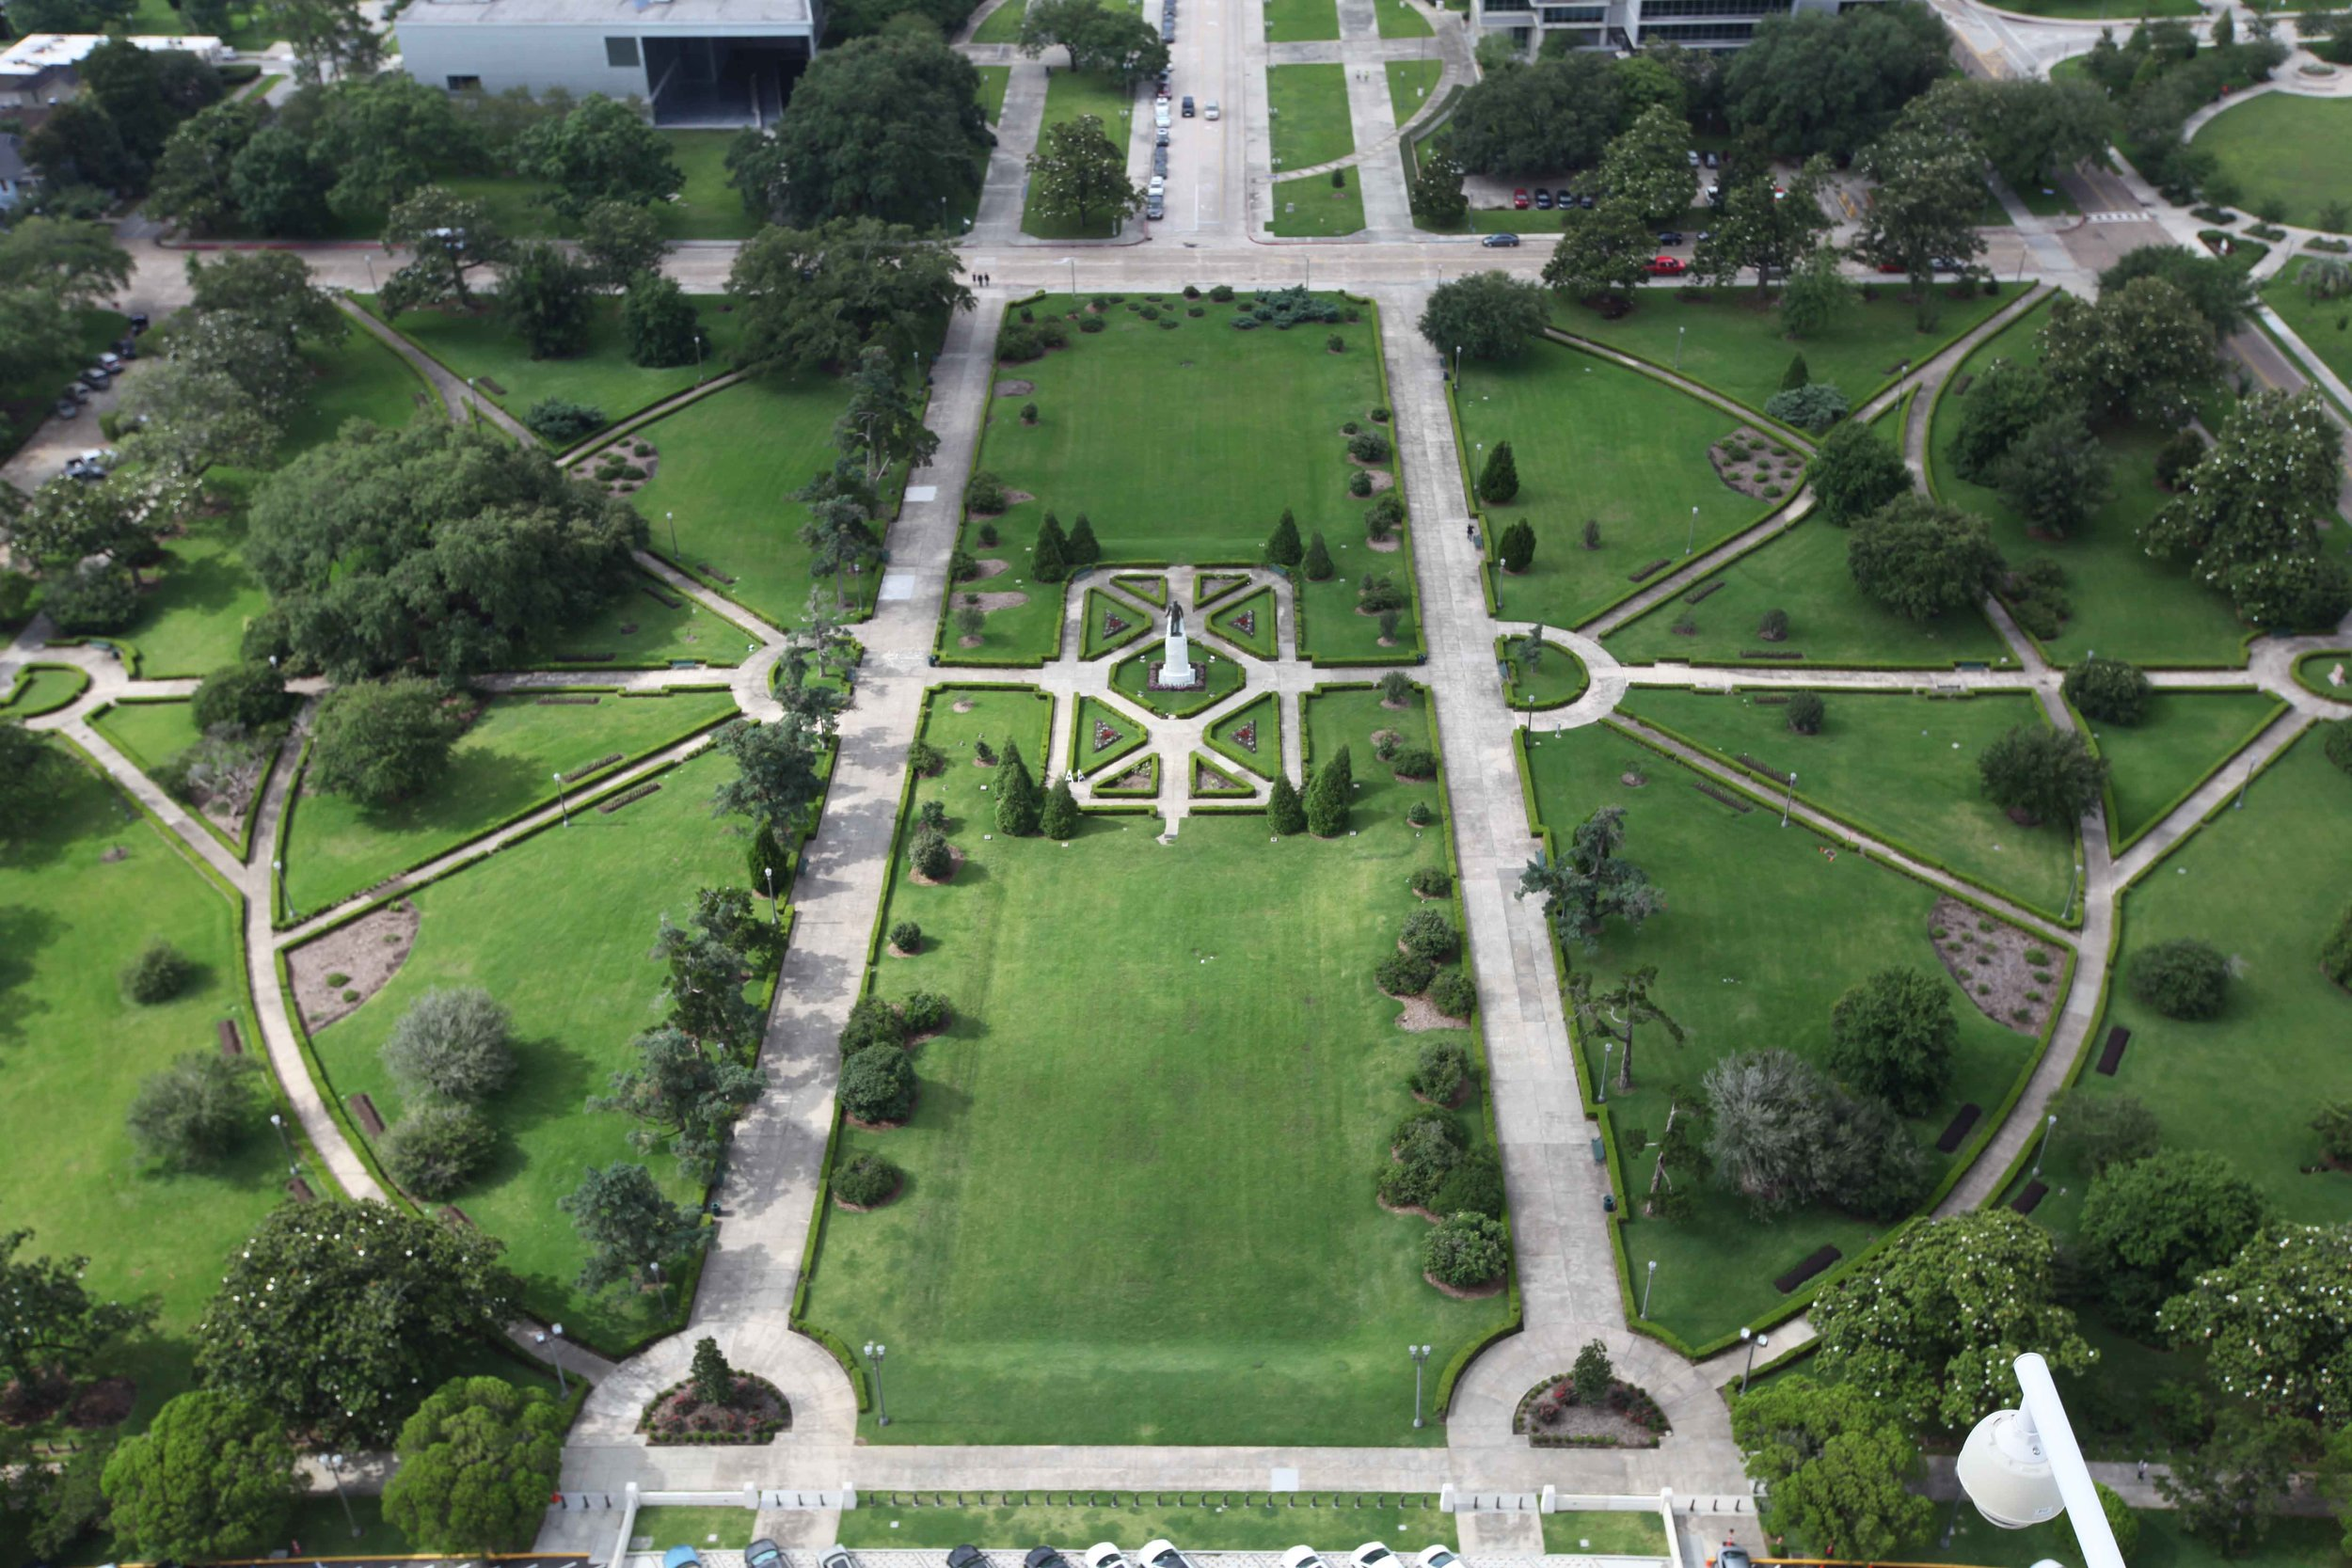 Huey Long's tomb and statue seen from above.